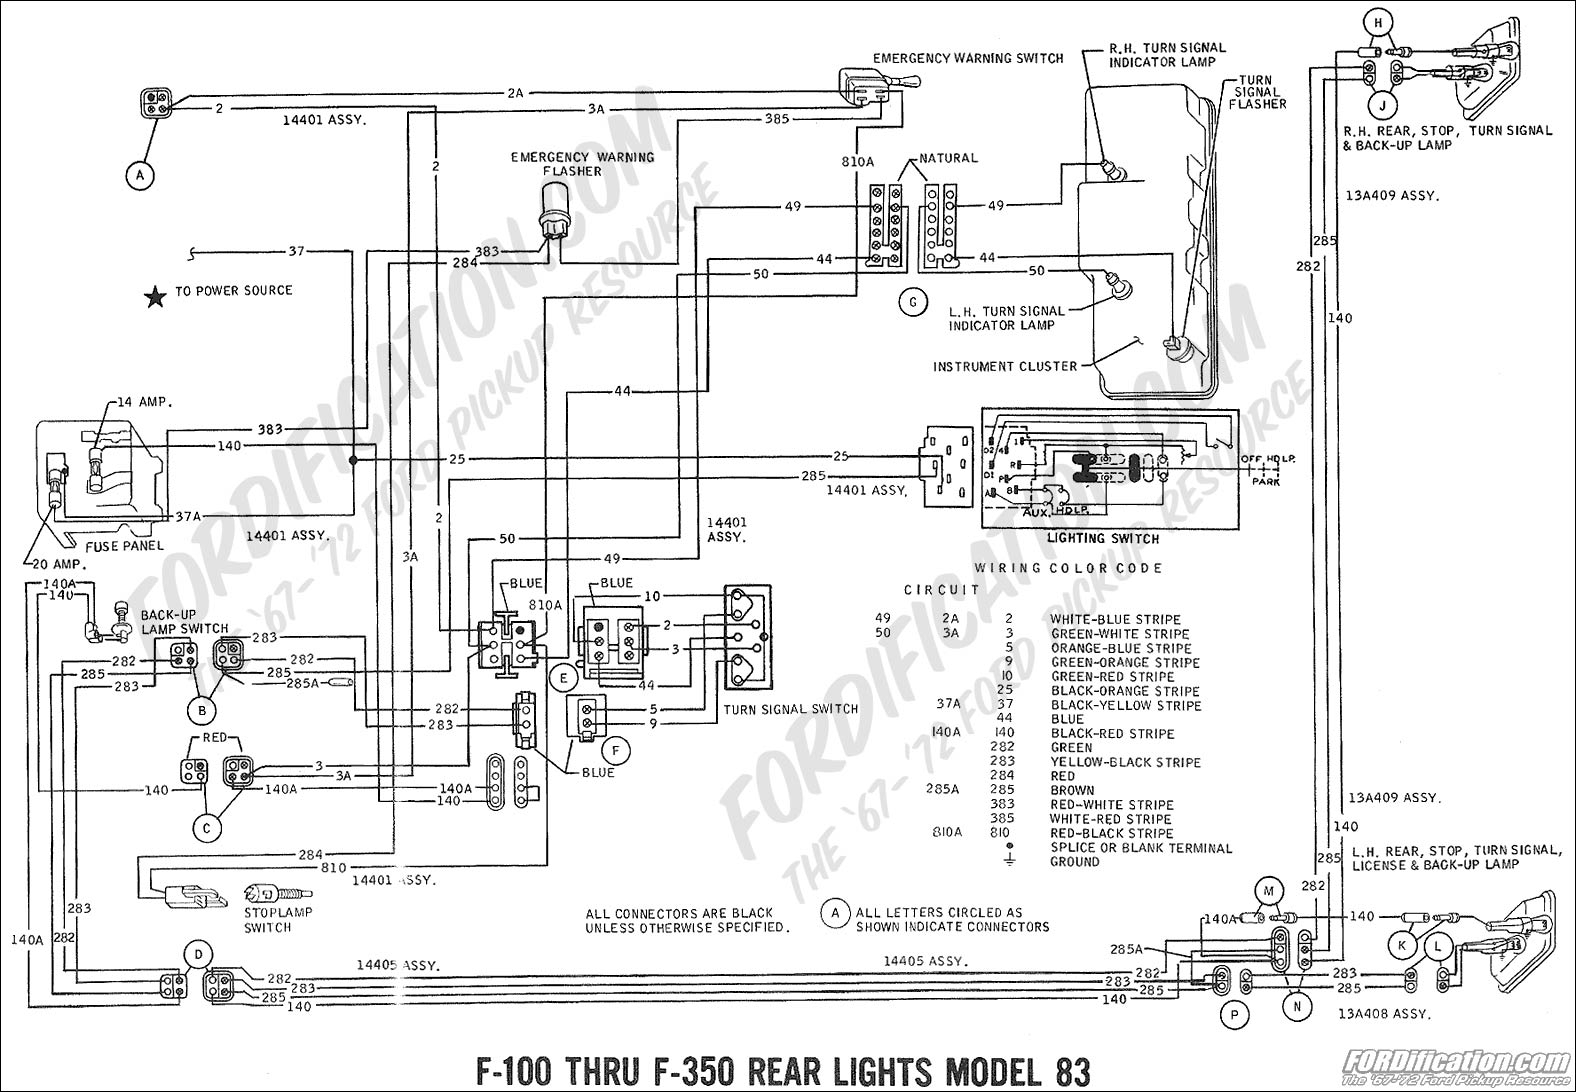 2000 f250 headlight switch wiring diagram Collection-Free ford Wiring Diagrams Fresh ford Truck Technical Drawings and Schematics Section H Wiring 5-g